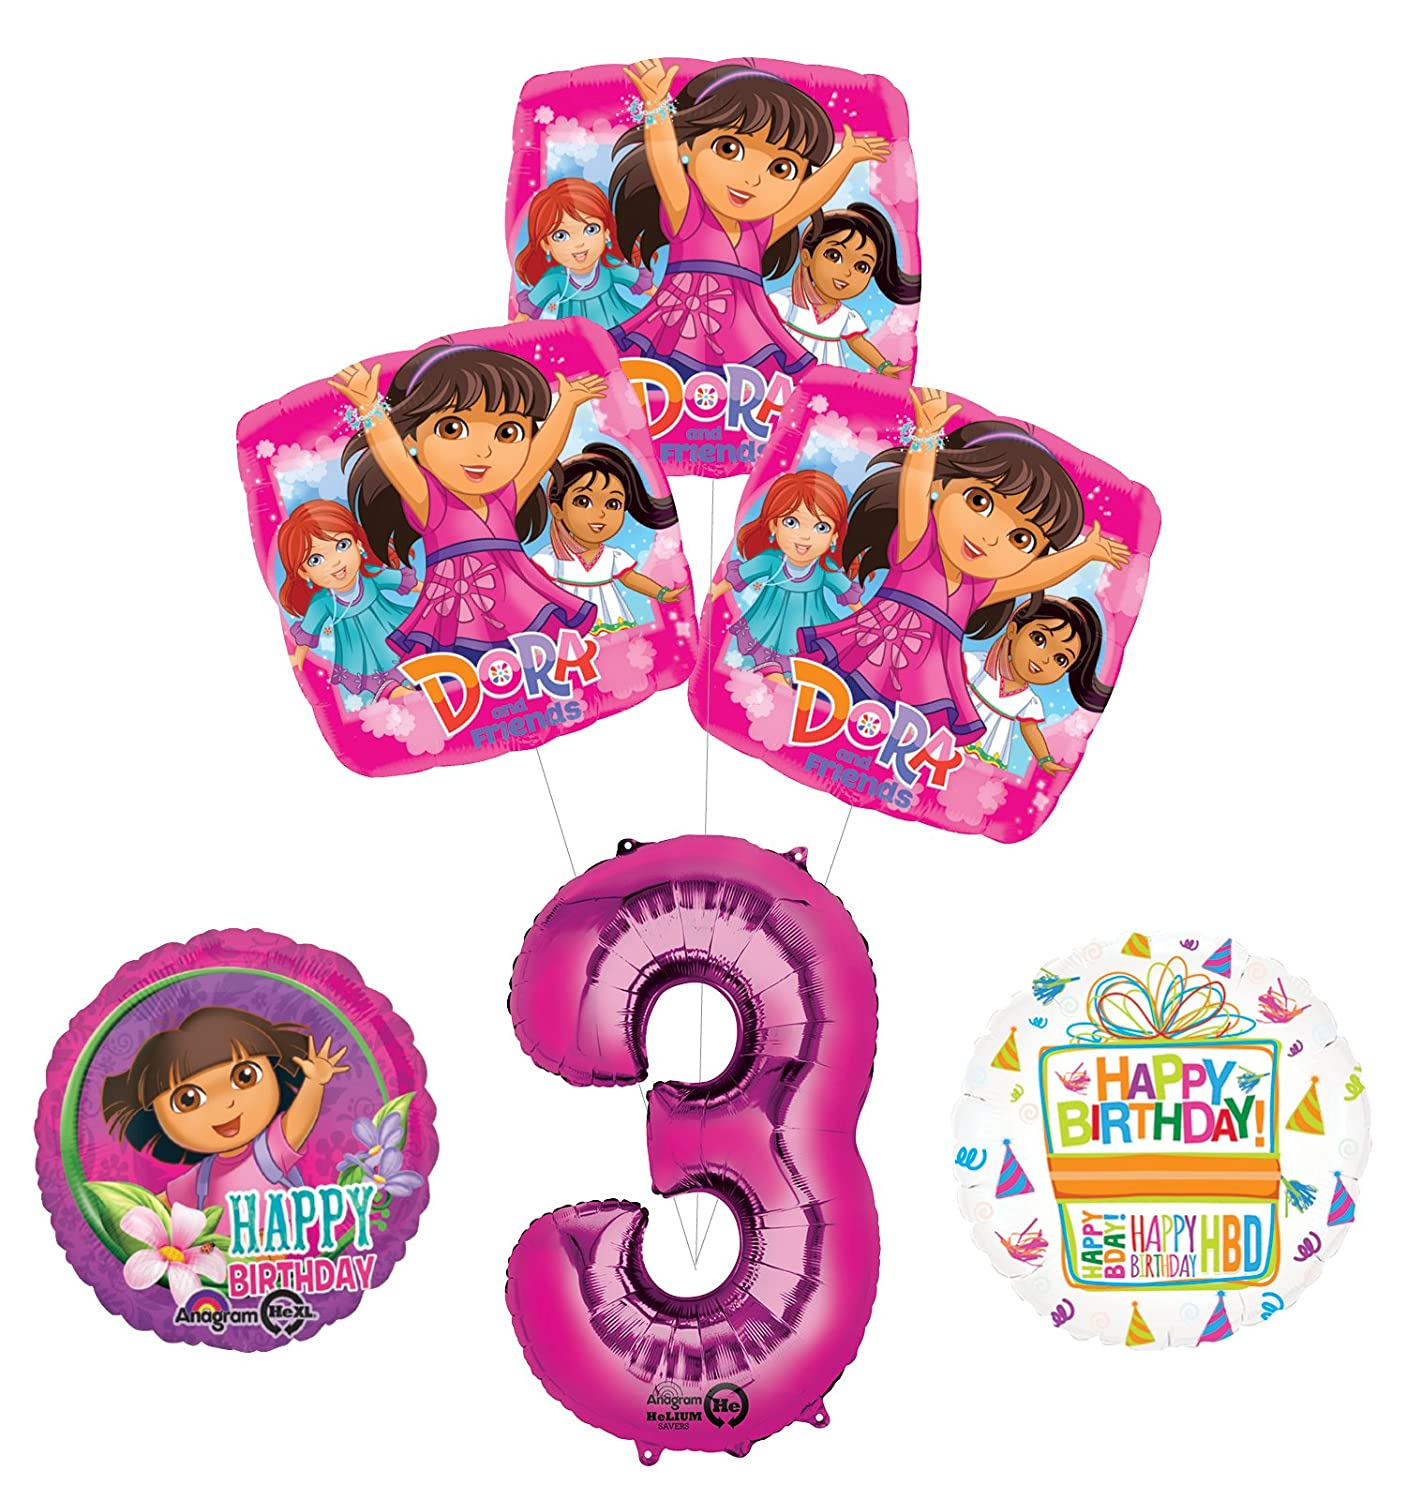 Dora the Explorer 3rd Birthday Party Supplies and Balloon Bouquet Decorations Mayflower